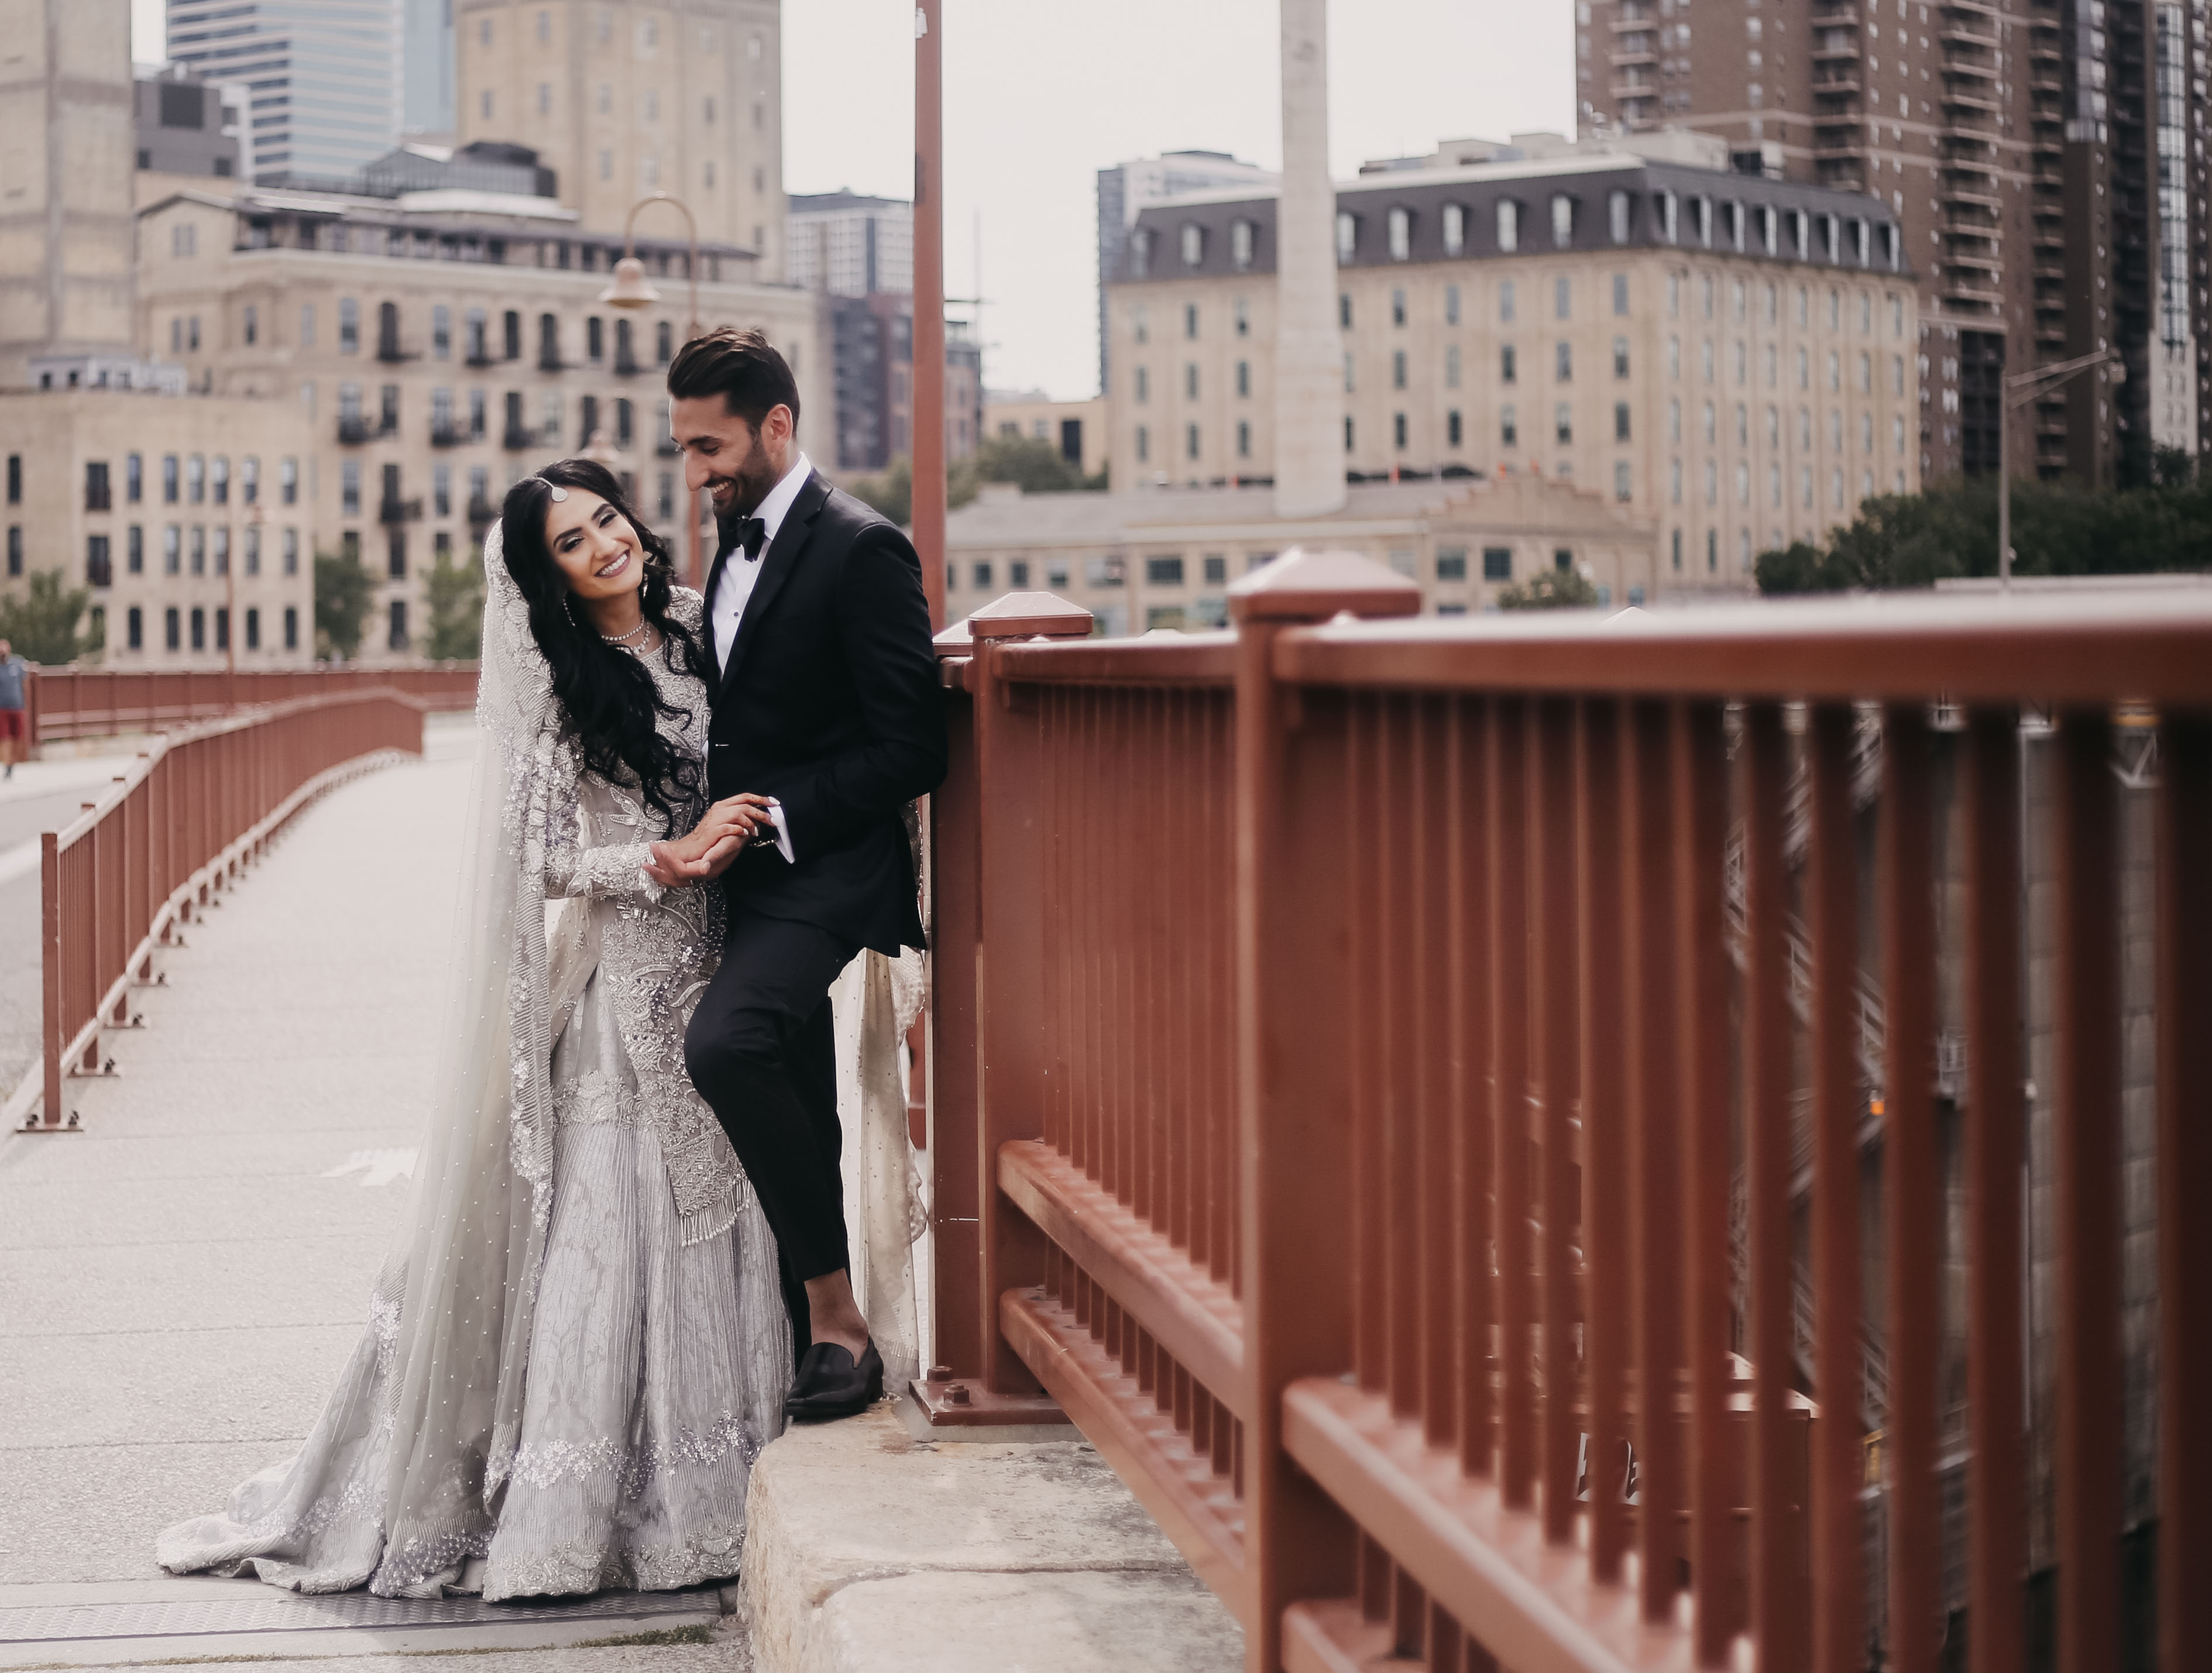 Aleeza and Salman posing on bridge before their traditional walima.